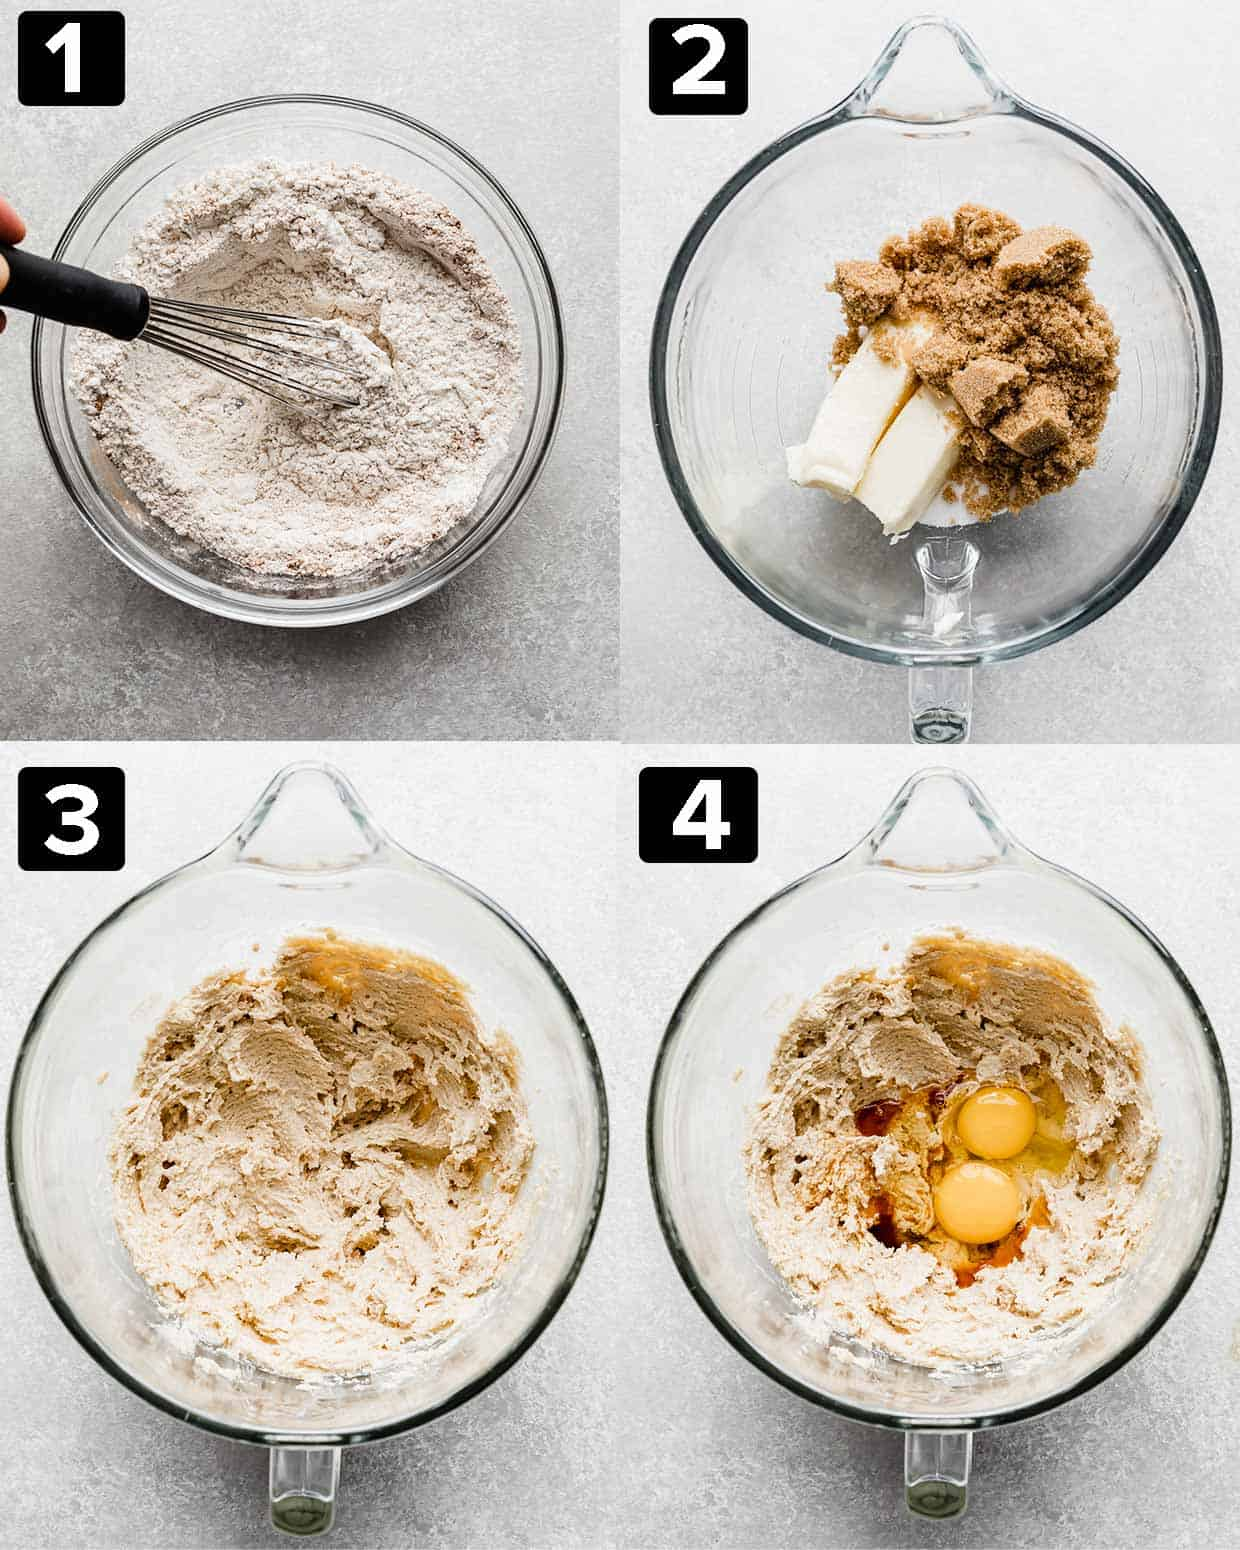 A 4 photo collage of a glass bowl and ingredients being mixed to make Oatmeal Butterscotch Cookies.